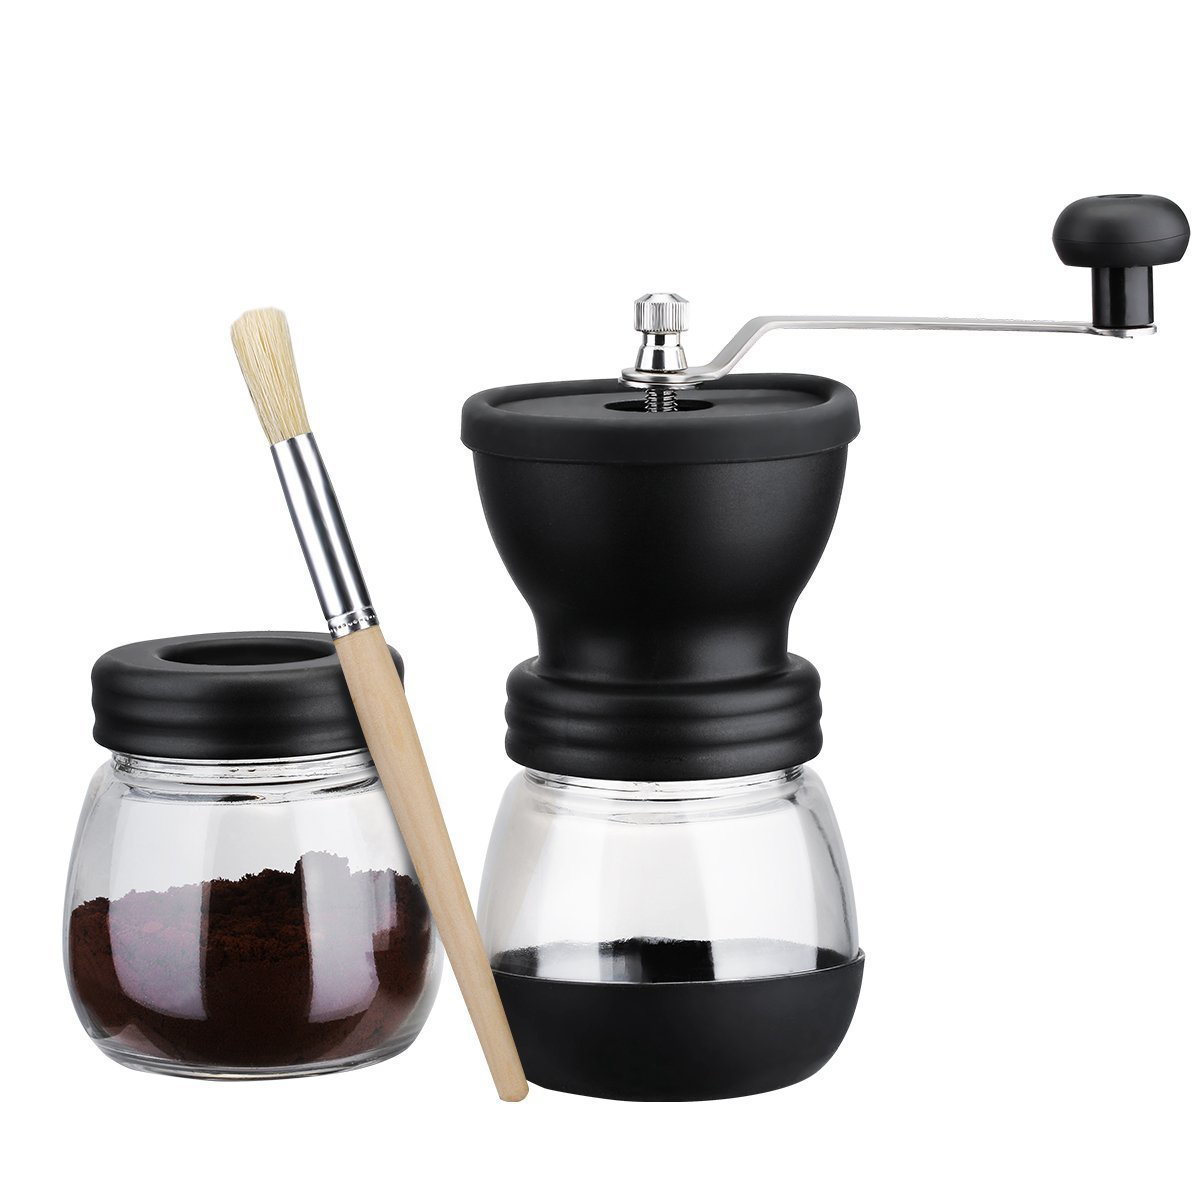 Manual Coffee Grinder with Storage Jar Soft brush Conical Ceramic Burr Quiet with 2 Glass Sealed Pots Portable Coffee Mill toolManual Coffee Grinder with Storage Jar Soft brush Conical Ceramic Burr Quiet with 2 Glass Sealed Pots Portable Coffee Mill tool